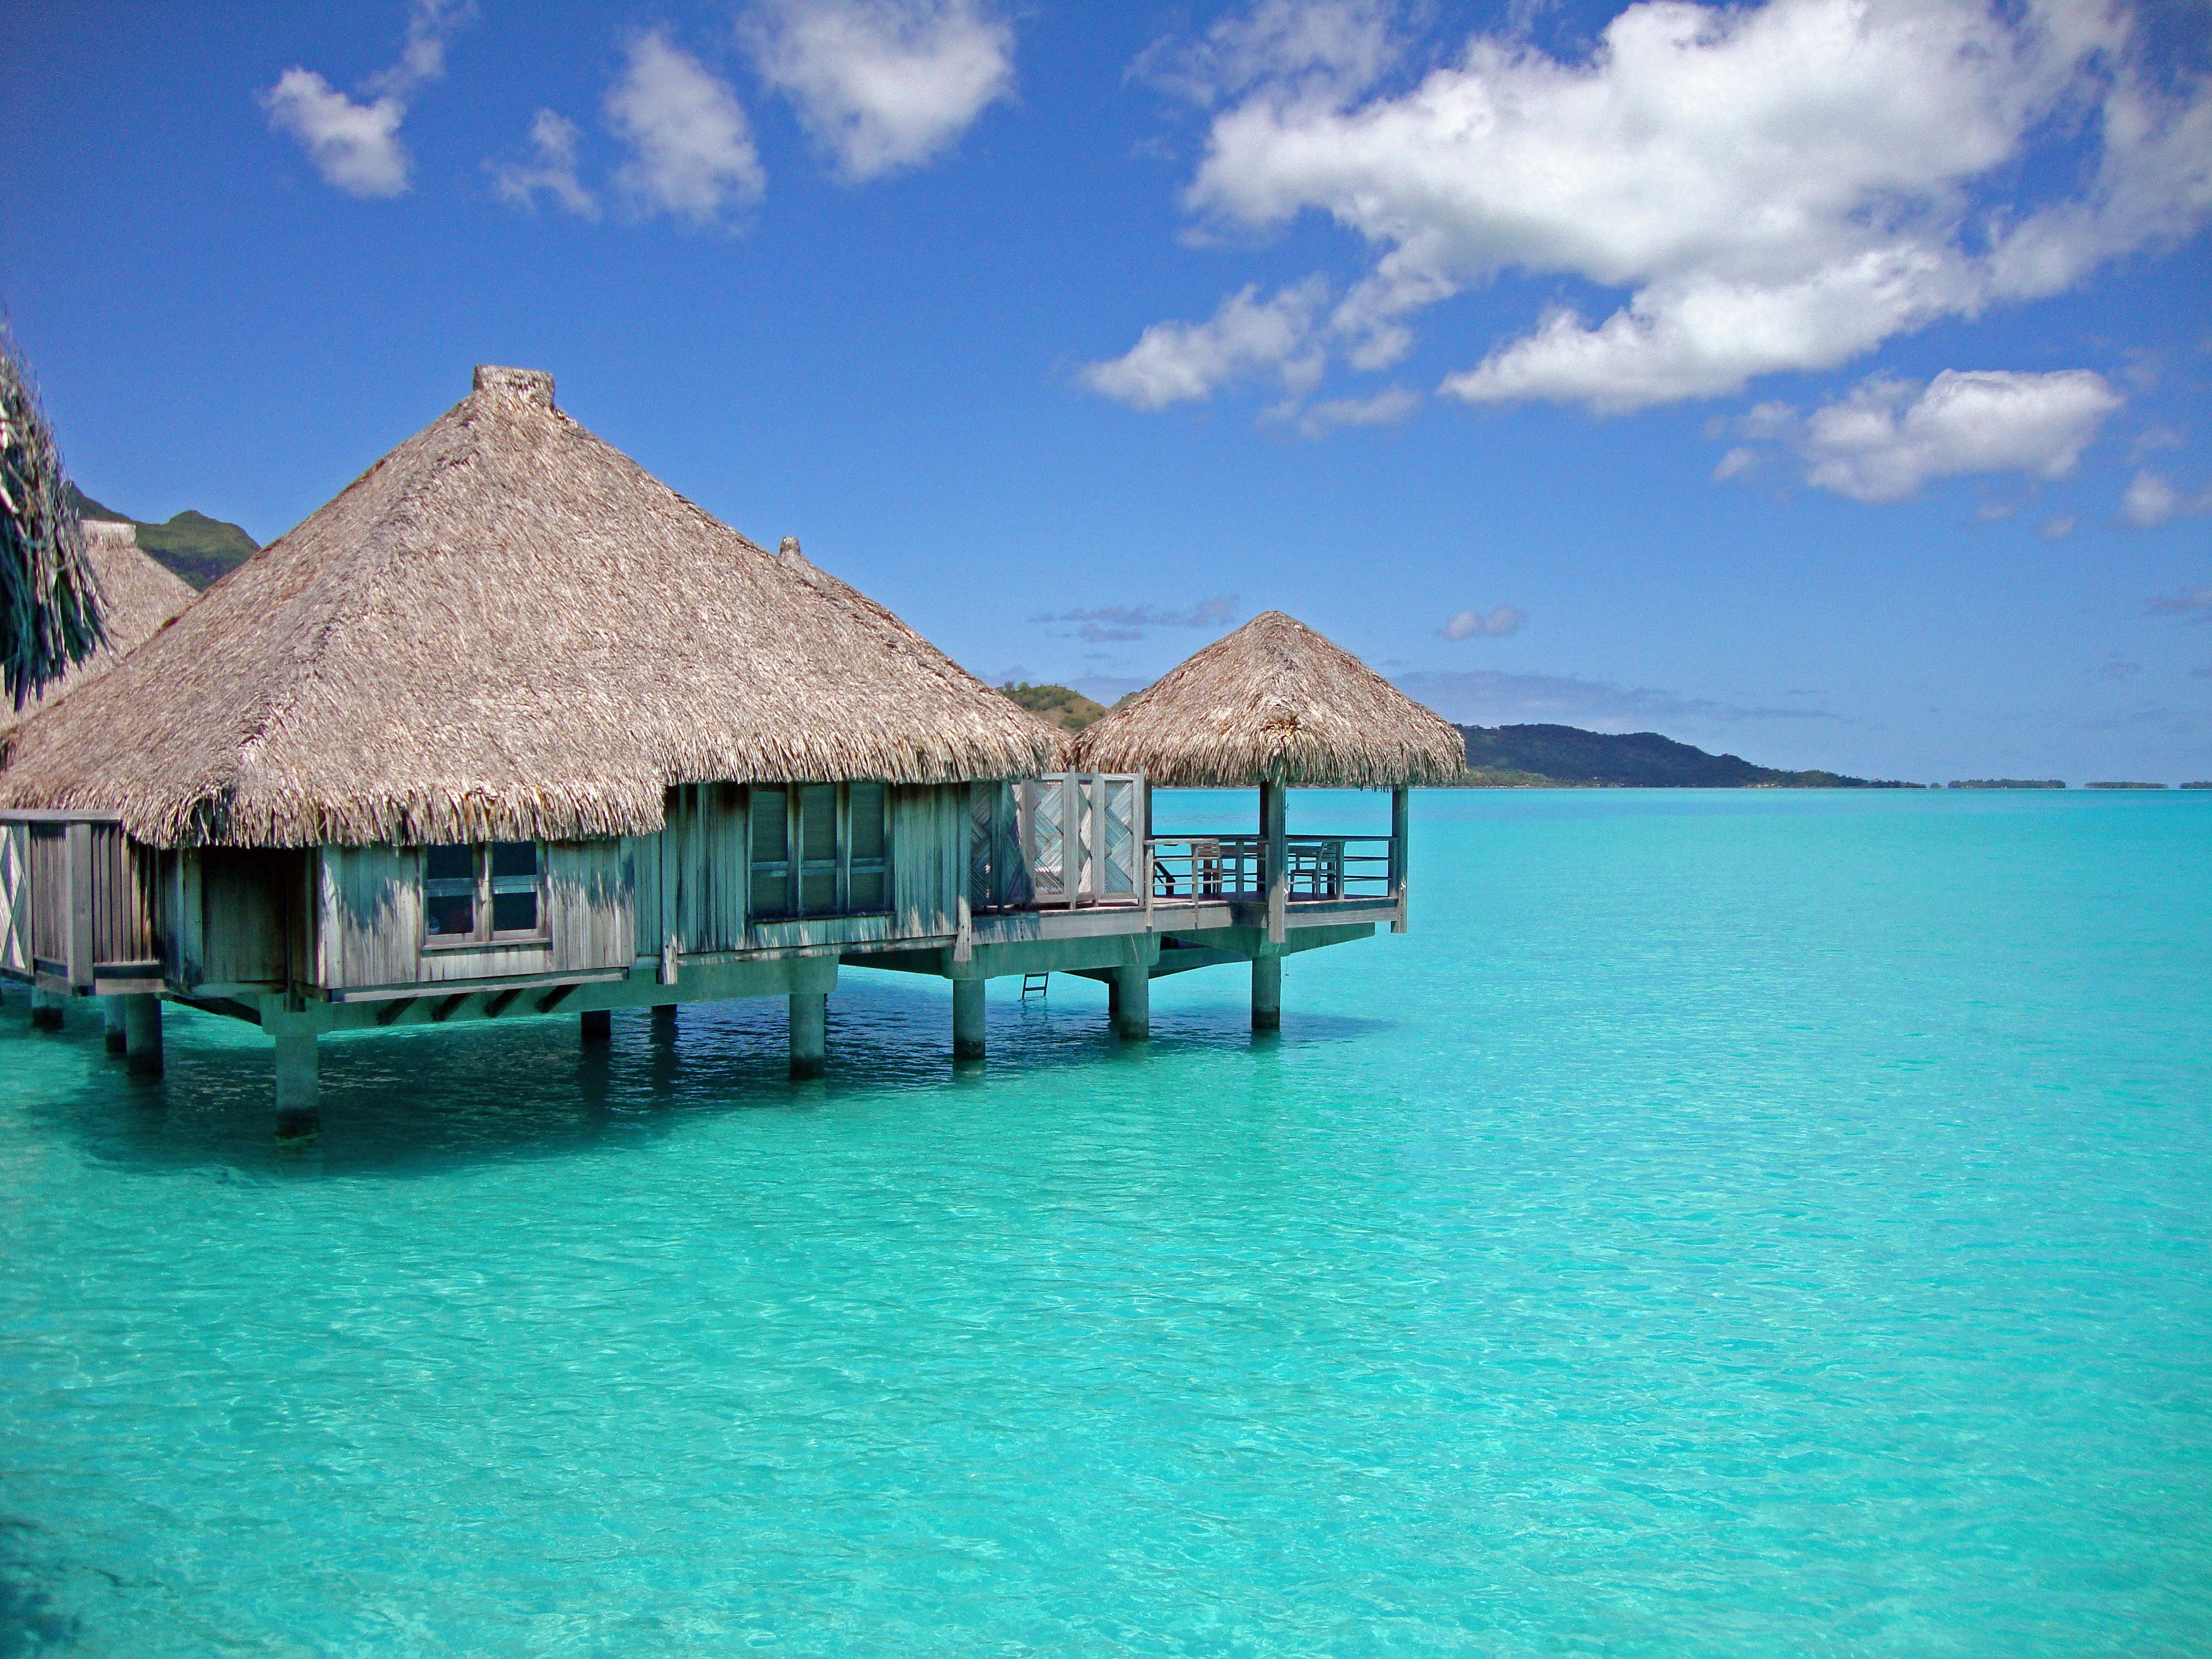 Bungalow Overwater In Fiji Islands